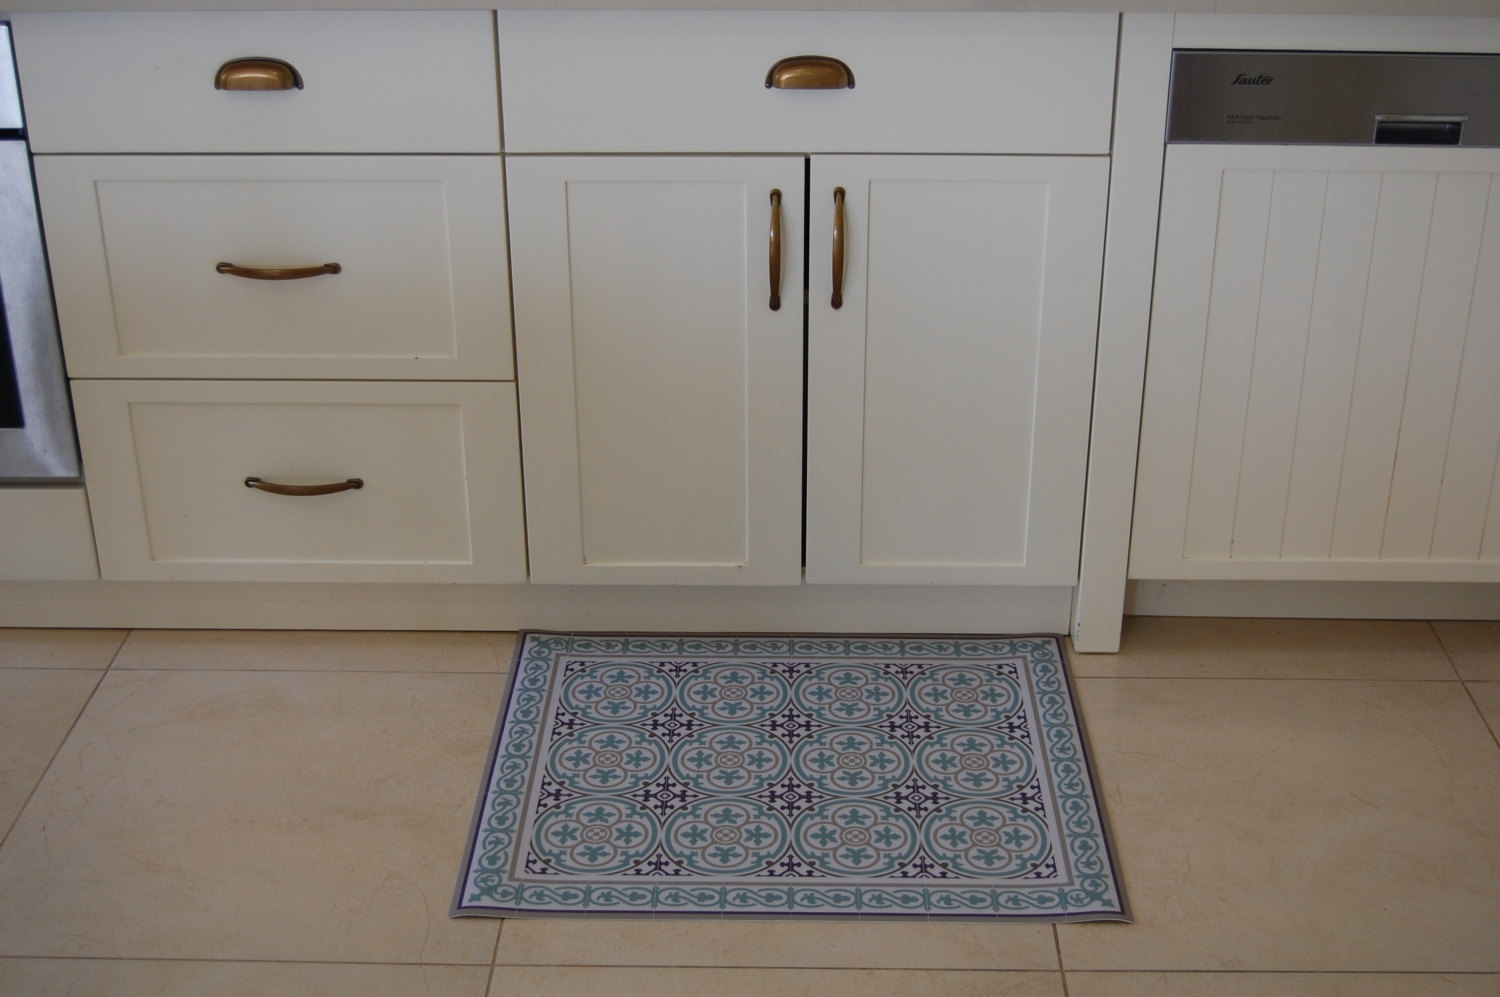 Pvc Vinyl Mat Tiles Pattern Decorative Linoleum Rug: decorative kitchen floor mat